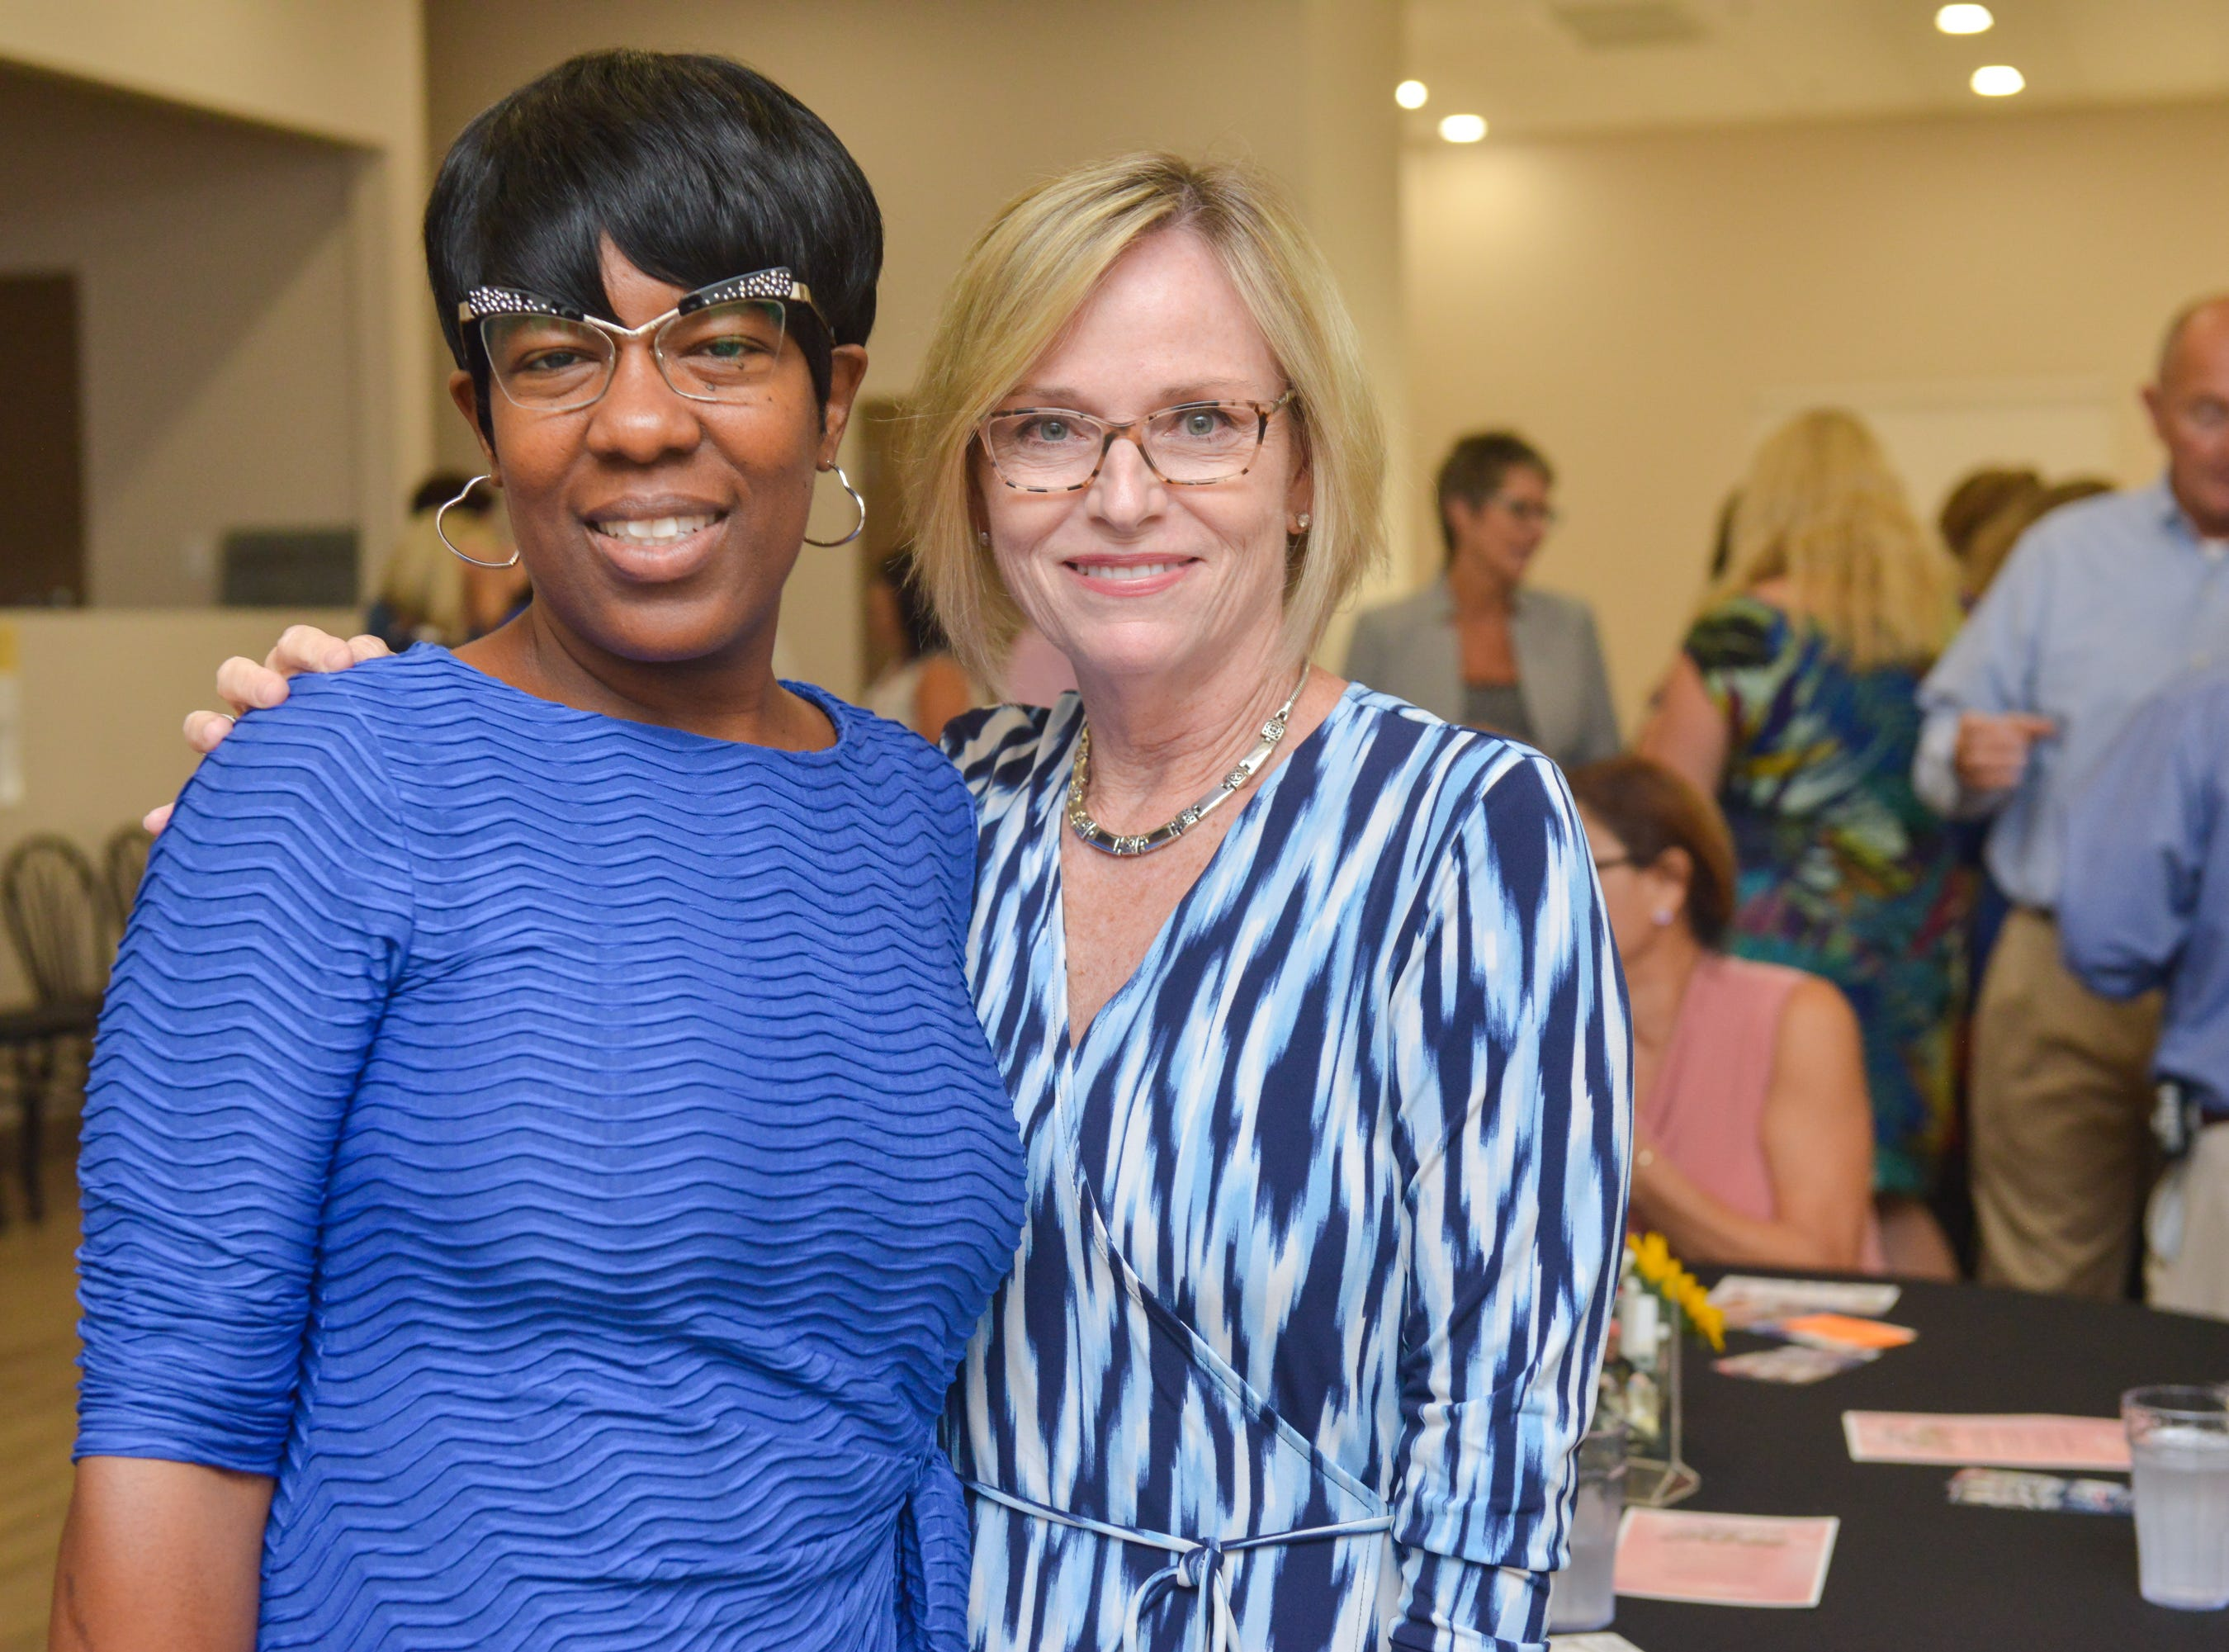 Kim Trosper and Susan Erickson during the Women of Excellence Gathering at Promise in Brevard sponsored by the Melbourne Regional Chamber.